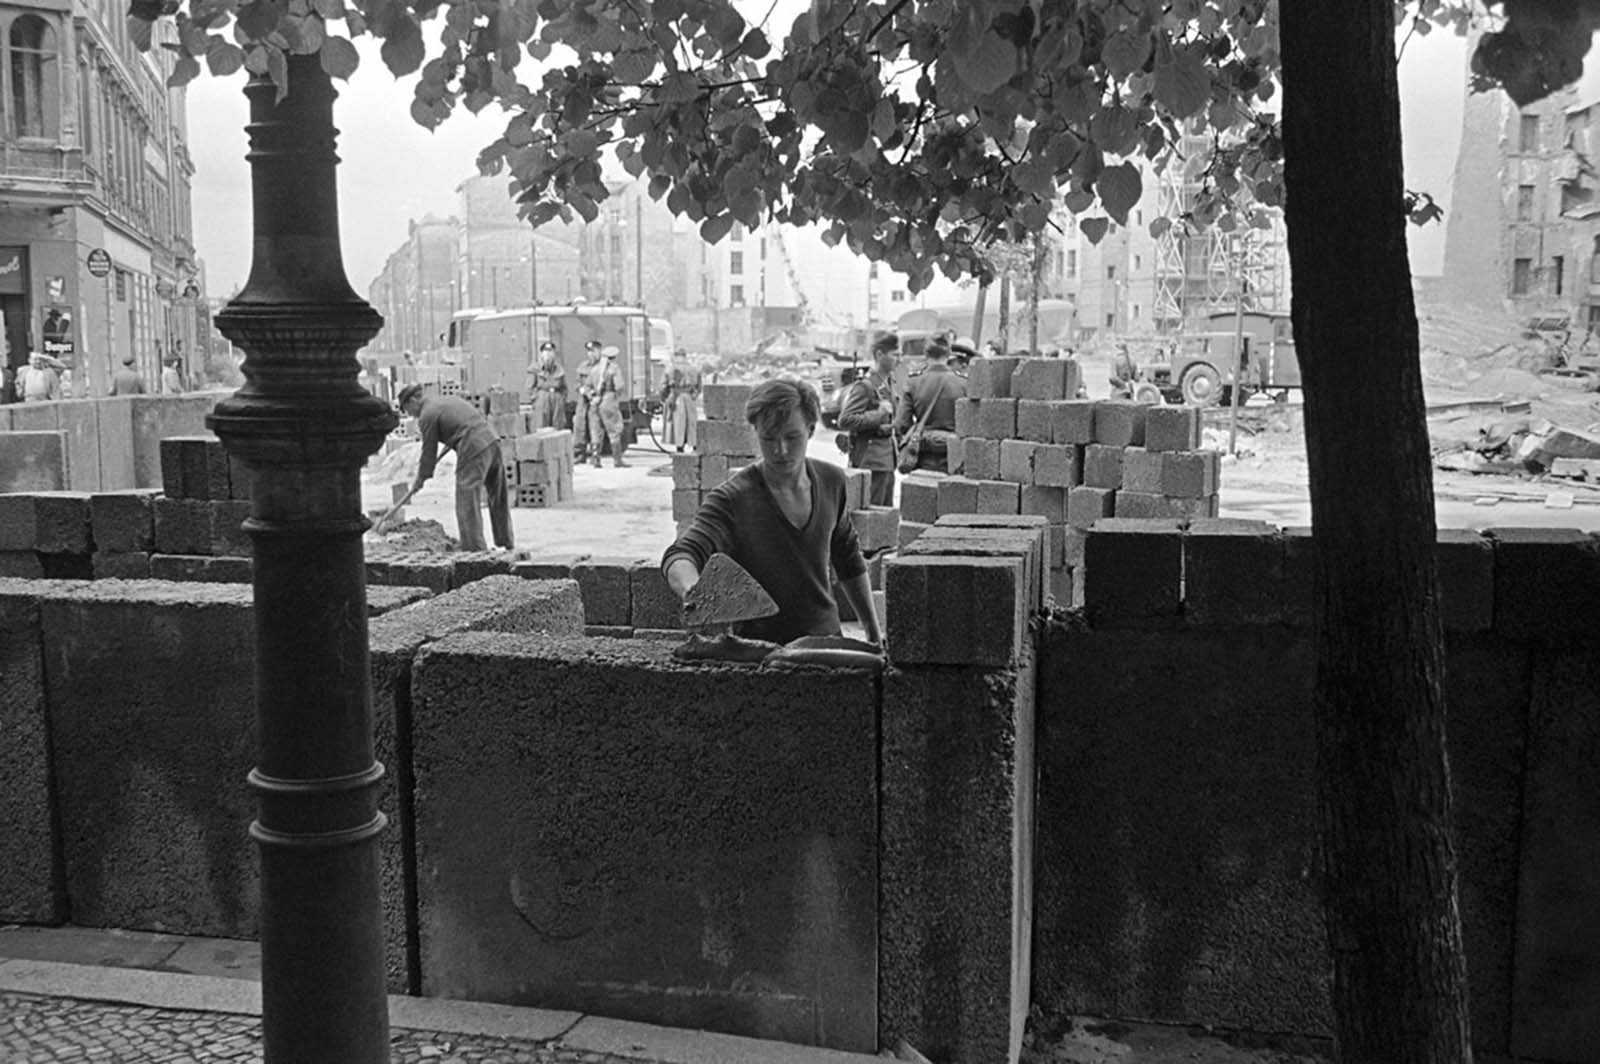 A young East Berliner works on a concrete wall that was later topped by barbed wire at a sector border in the divided city on August 18, 1961. People's Police stand guard in the background as another worker mixes cement.